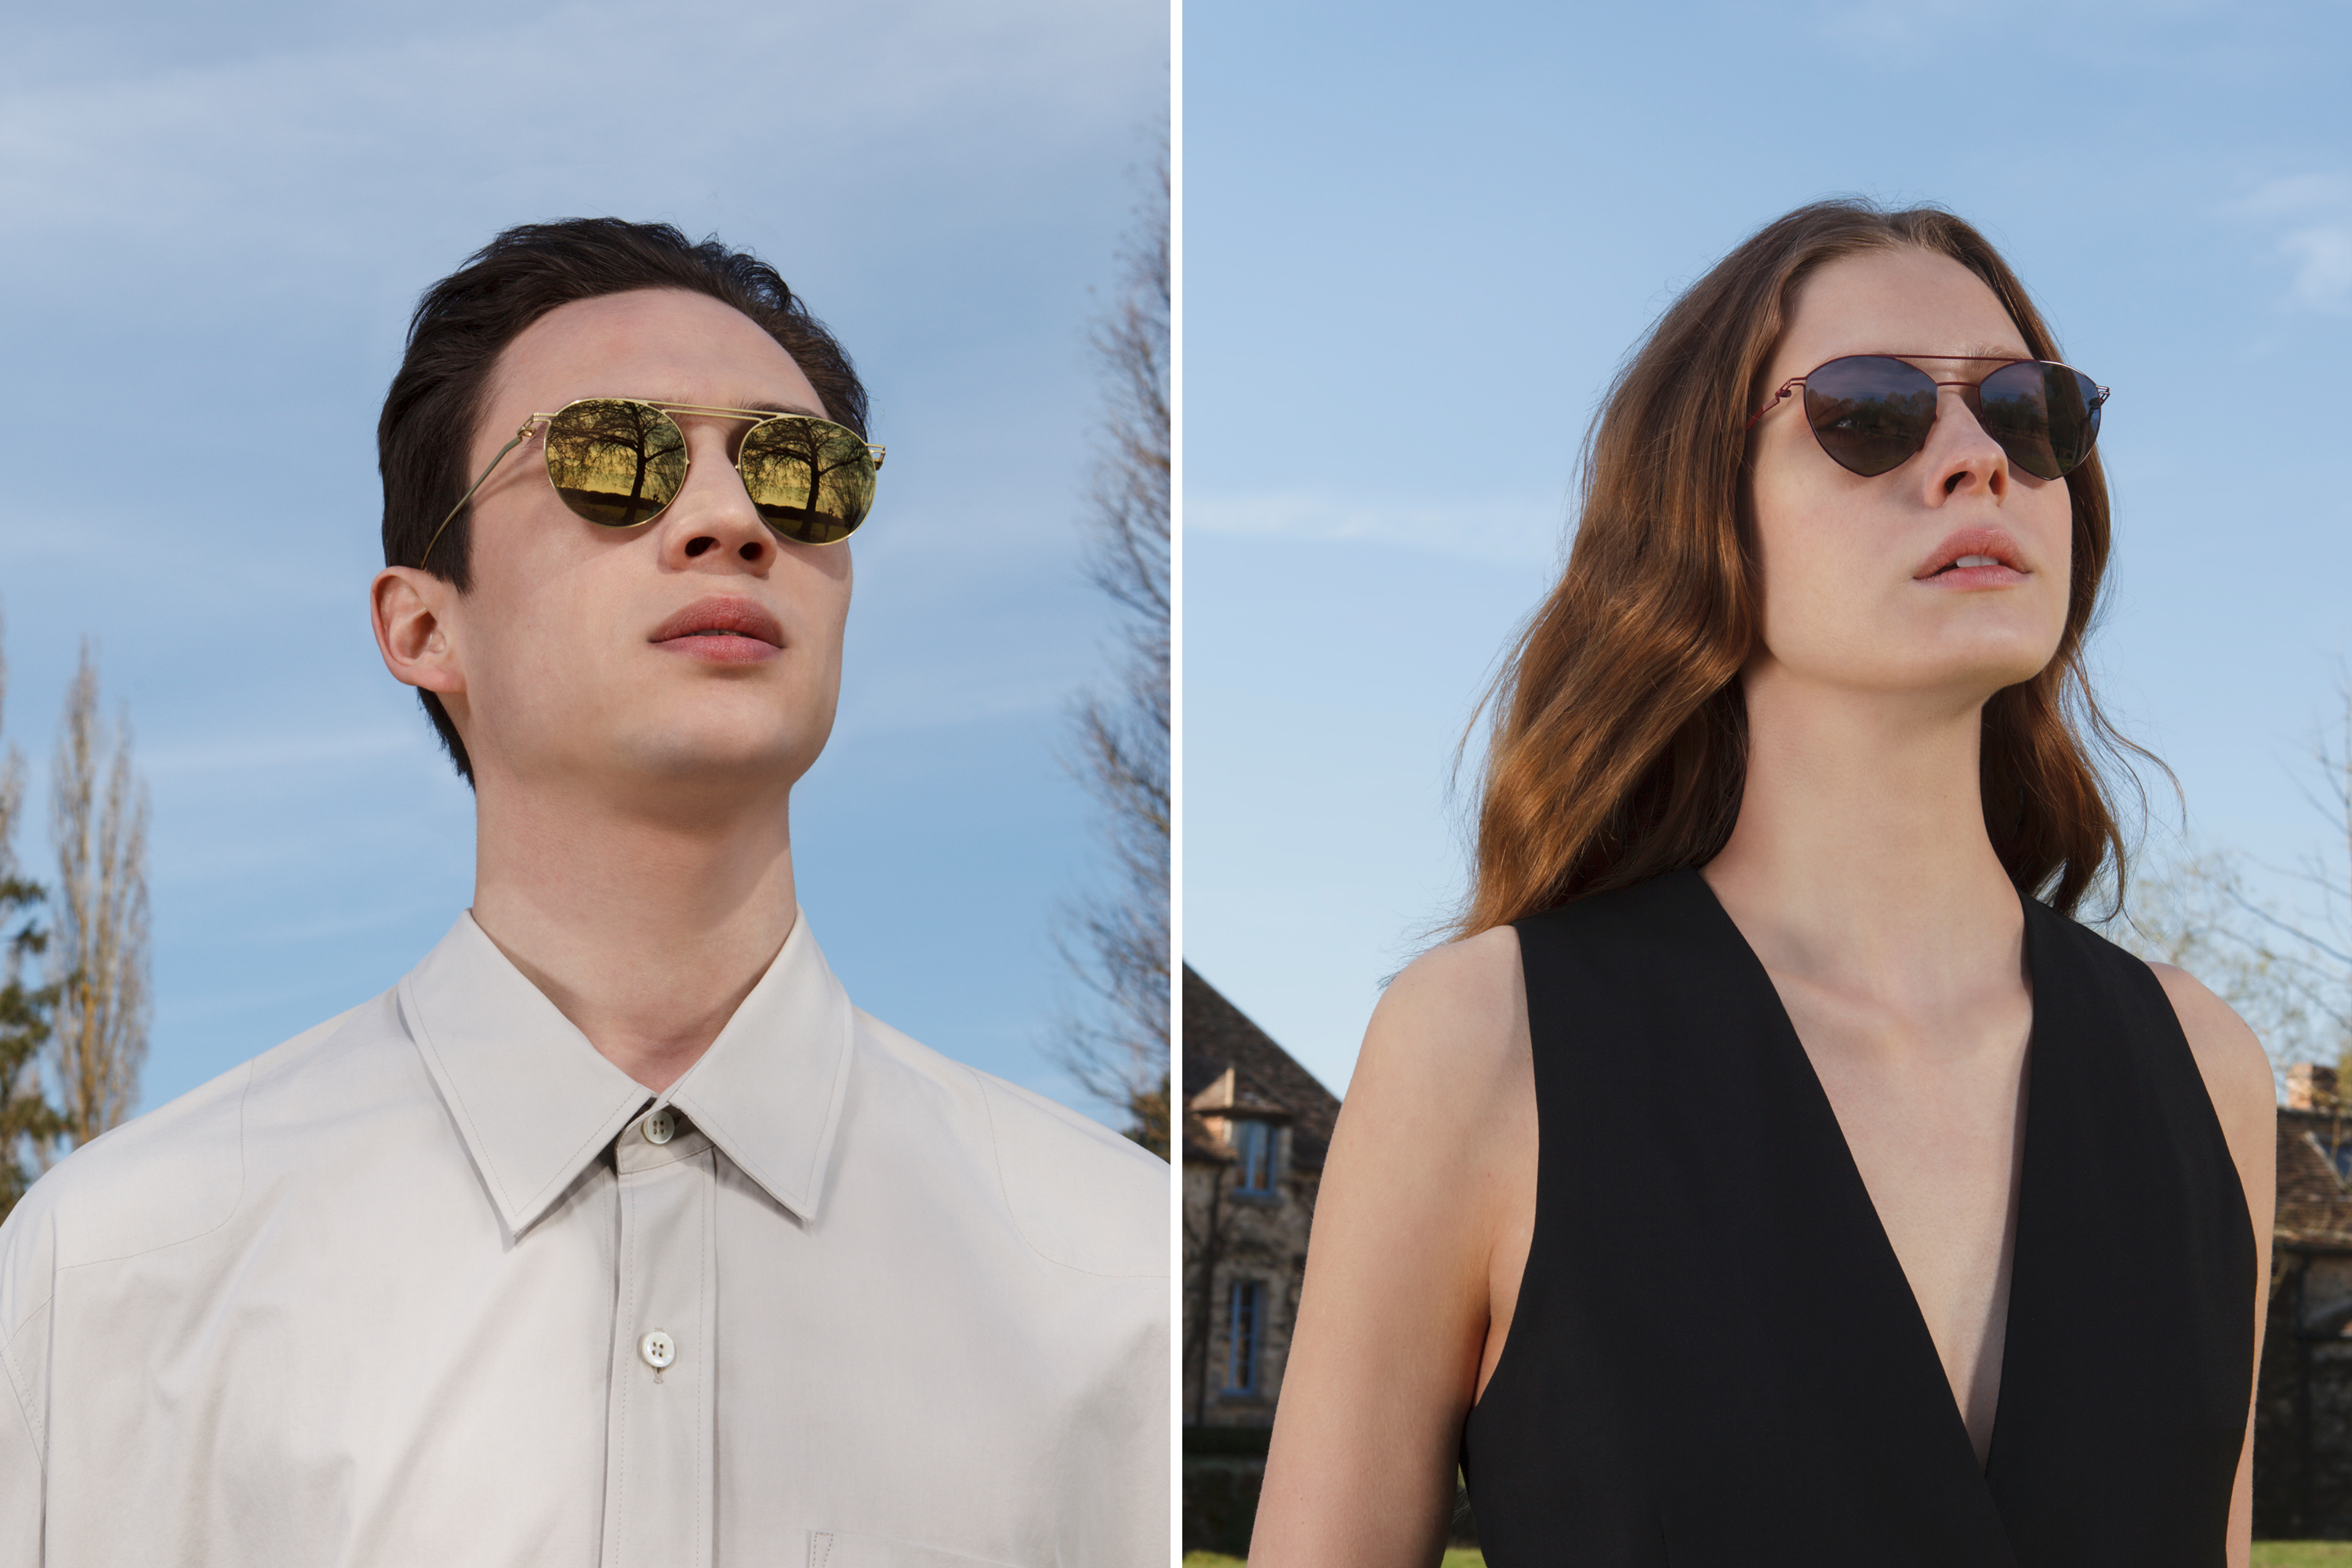 Sunglasses by MYKITA + Maison Margiela in their 2015 campaign. Photography by Charles Fréger.